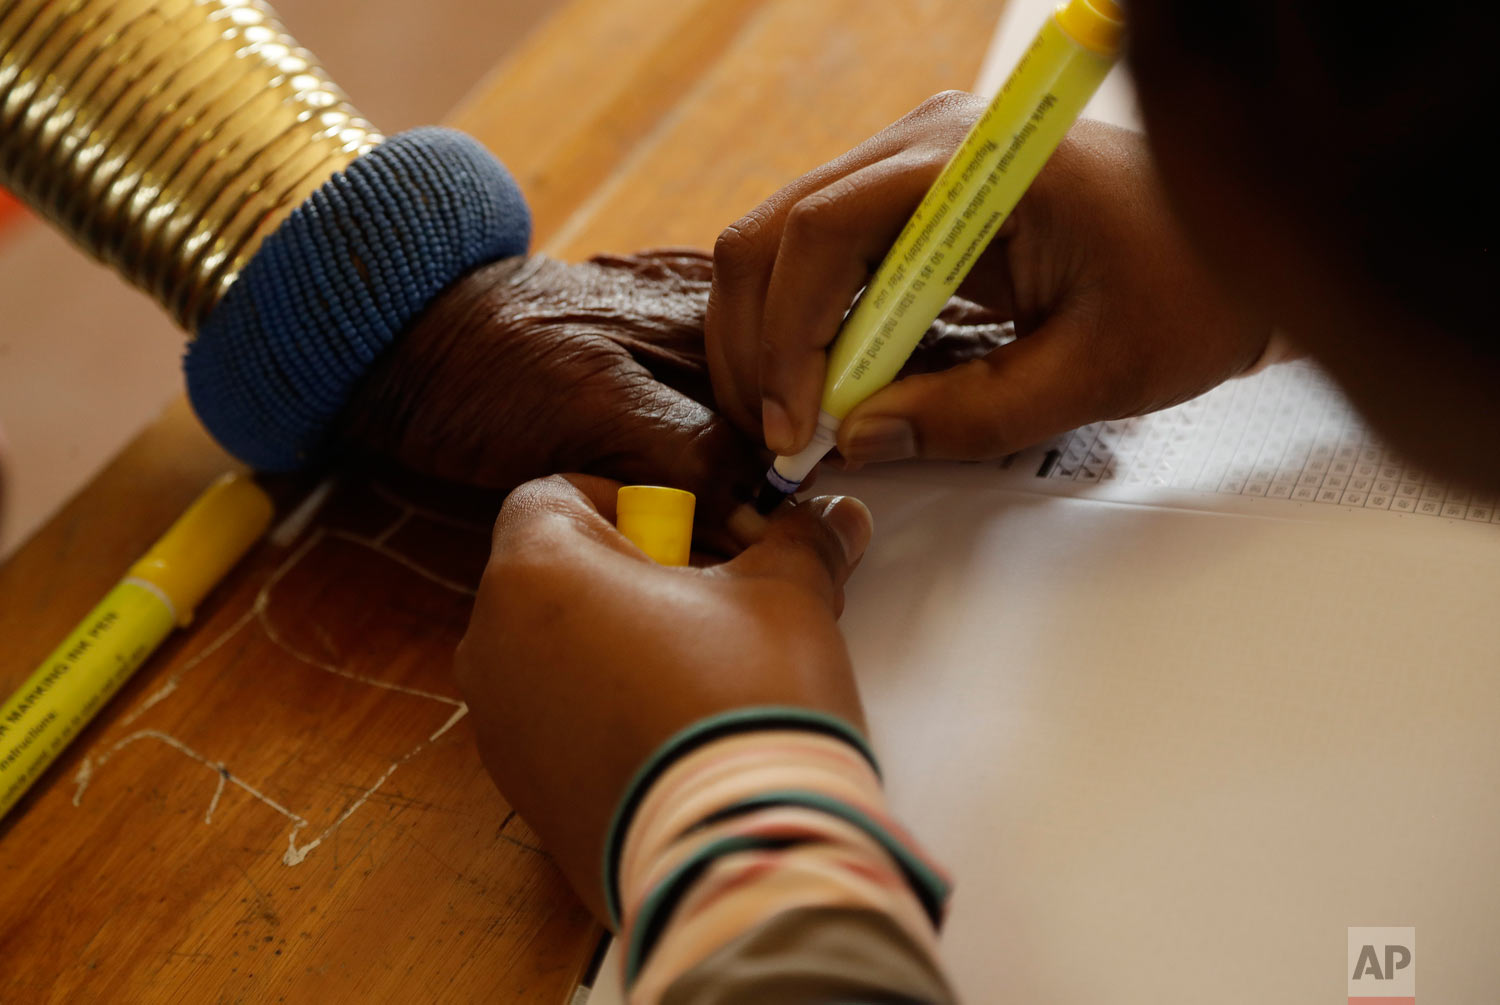 Esther Mahlangu has her thumb ink-marked before casting her vote at a polling station at KwaMhlanga in Mpumalanga, South Africa, May 8, 2019. (AP Photo/Themba Hadebe)